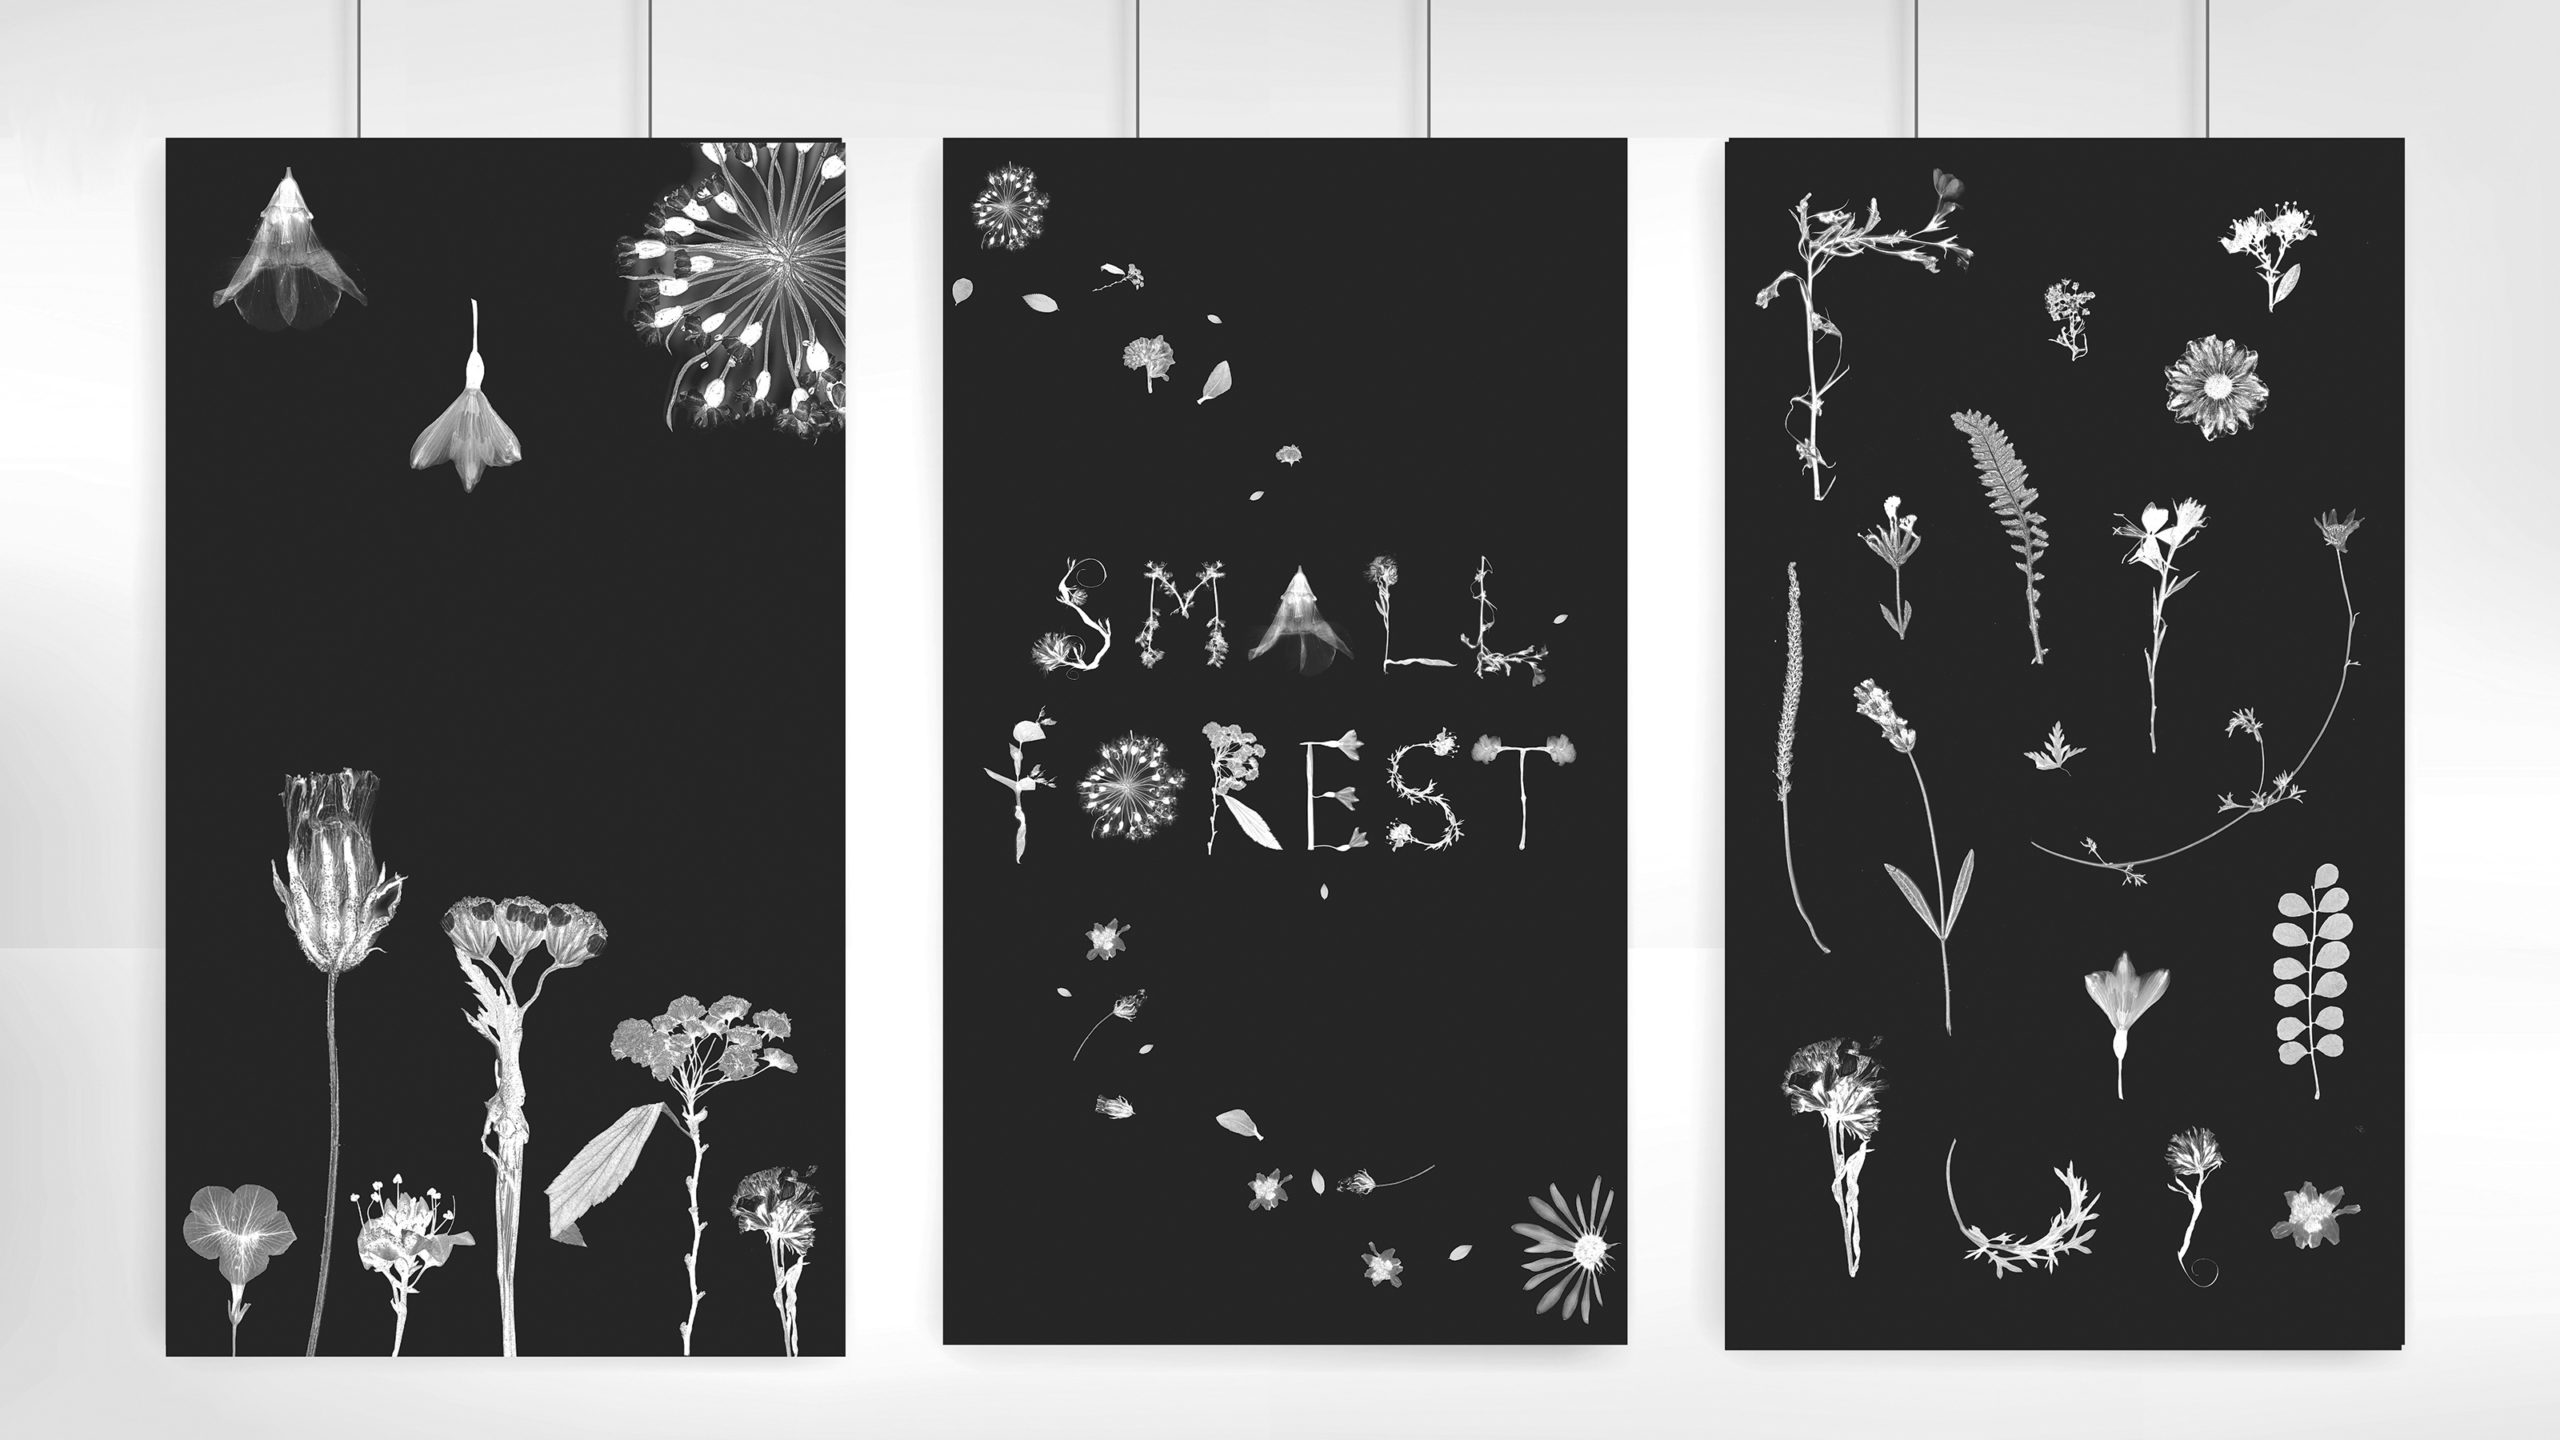 posters by Sophy Lee